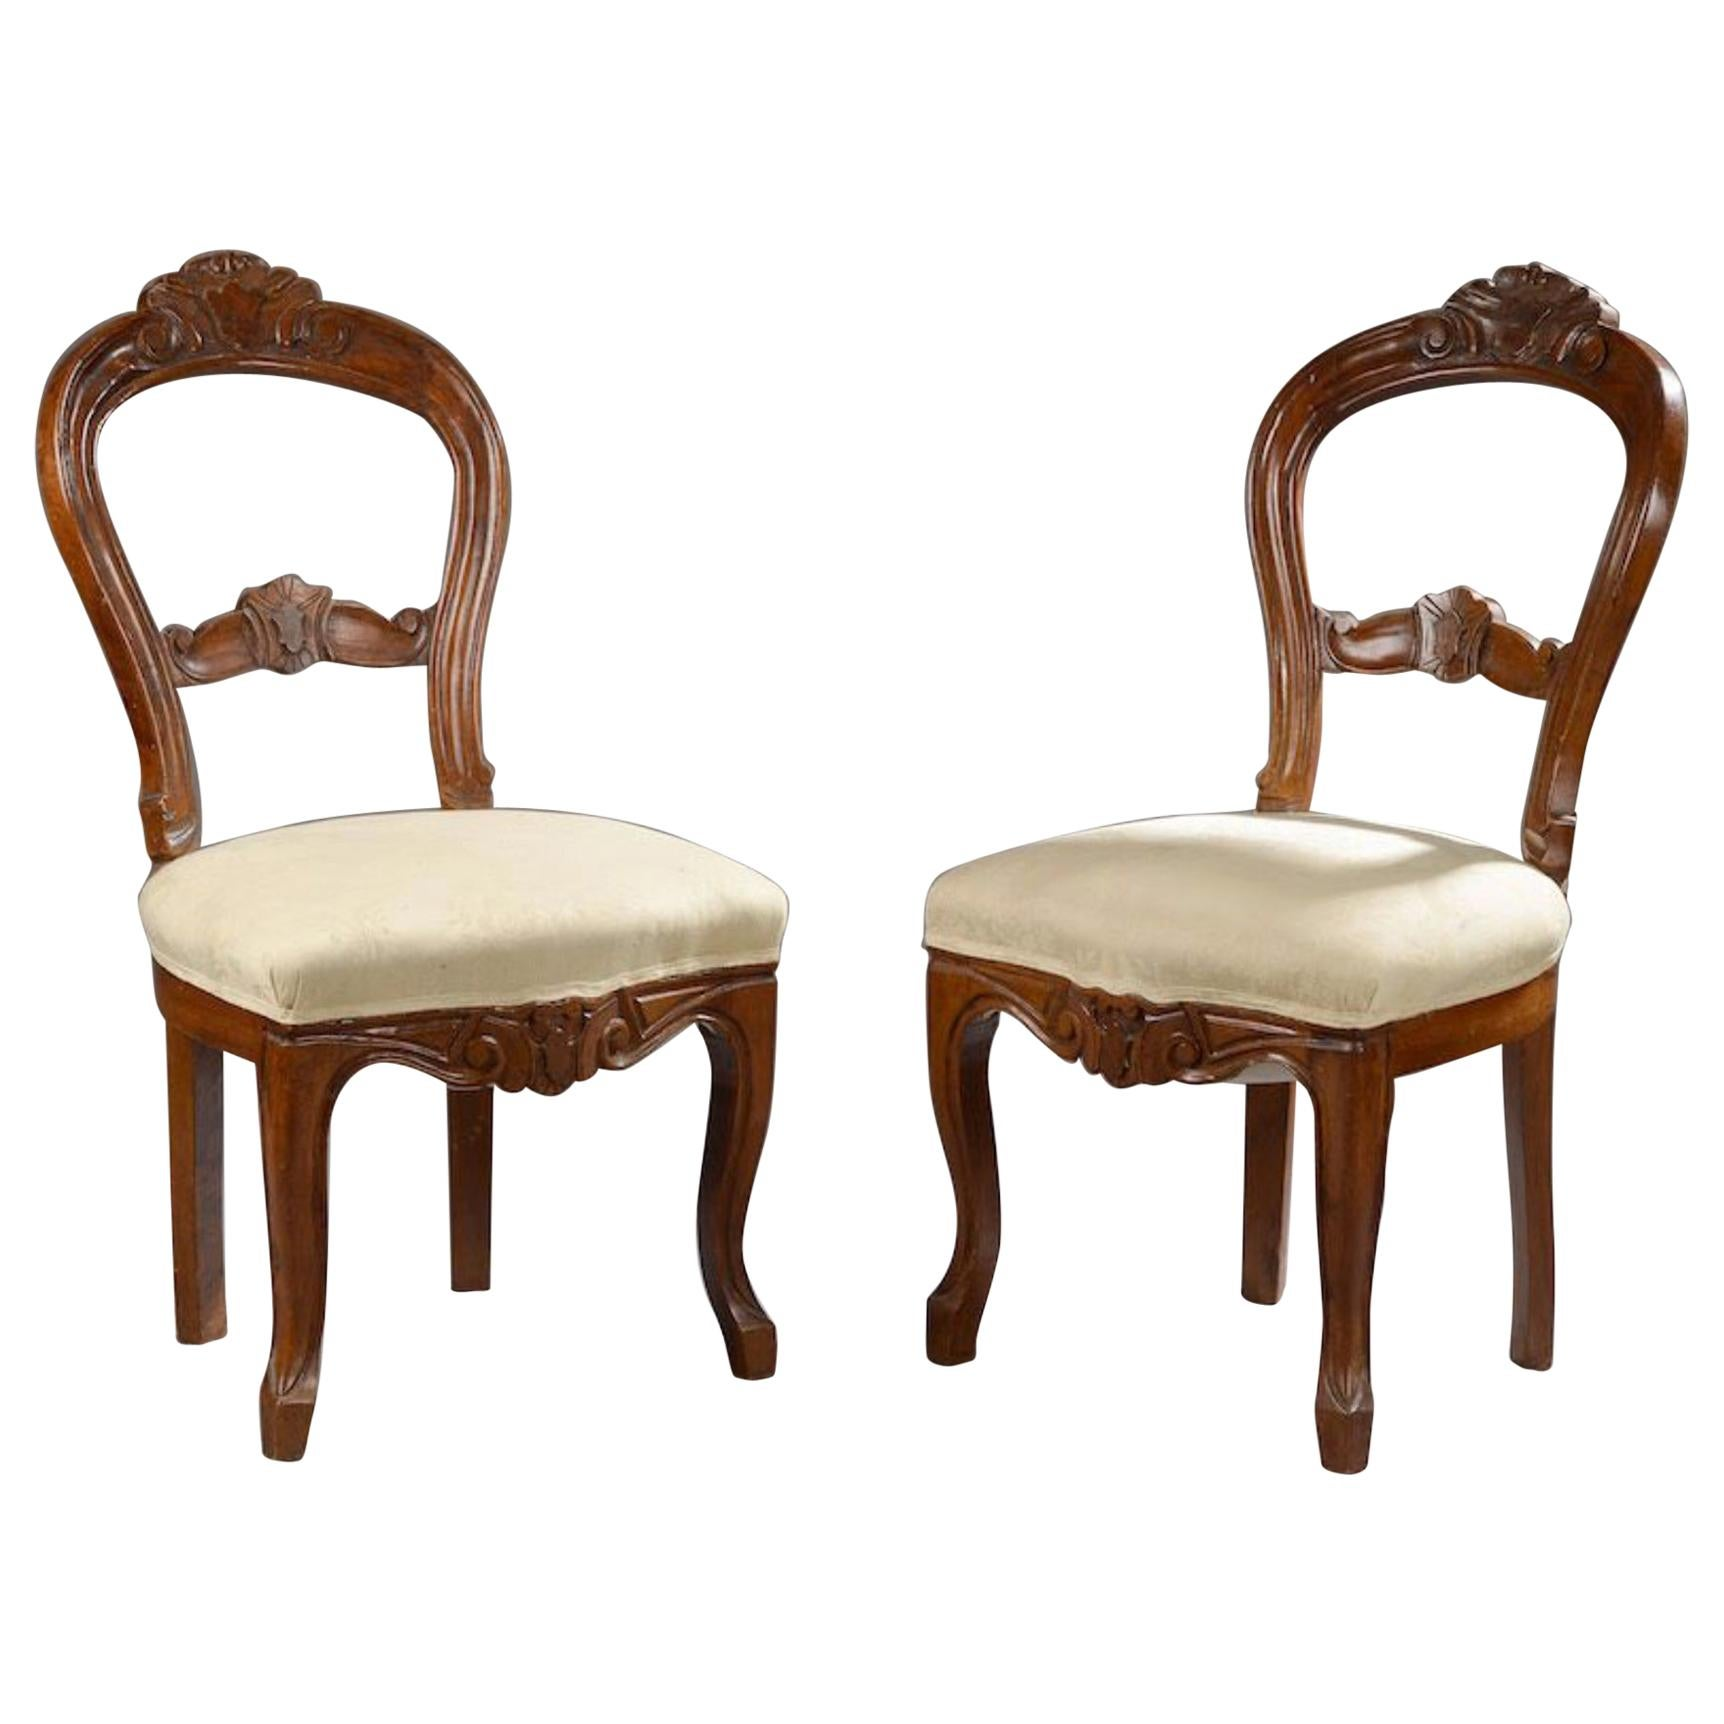 19th Century French Pair of Mahogany Hand Carved Chairs with Round Backrests